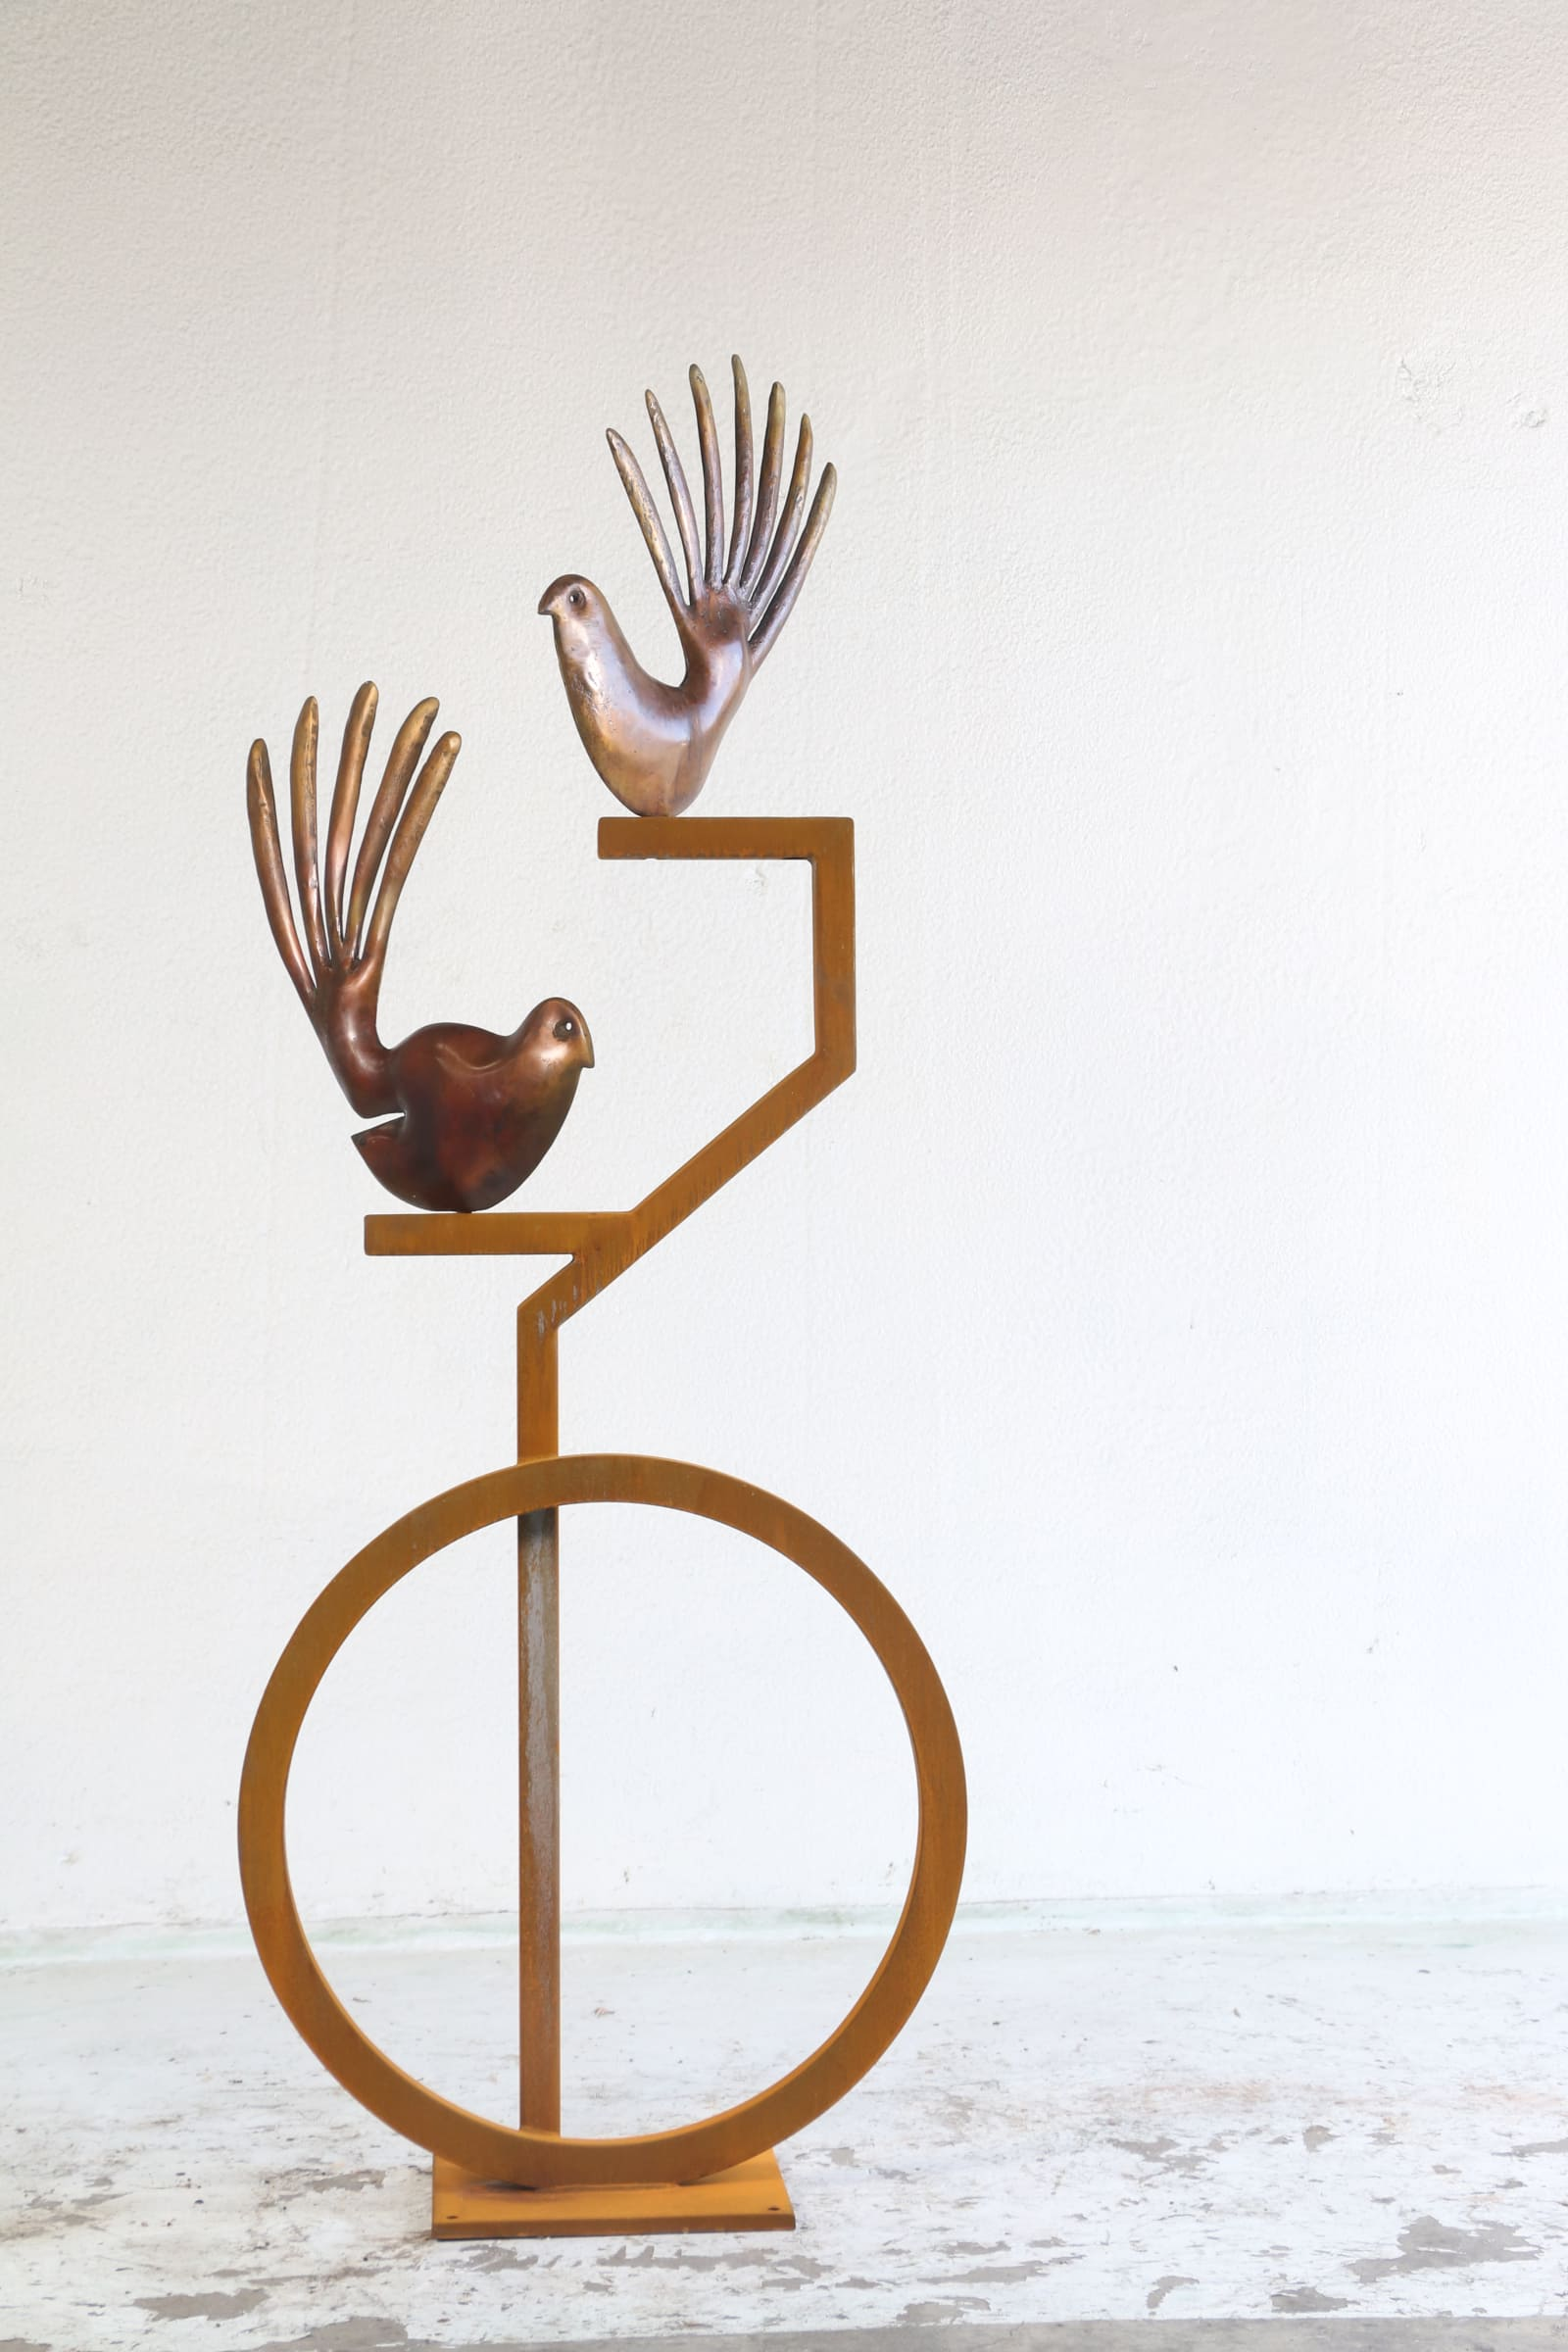 "<span class=""link fancybox-details-link""><a href=""/artists/50-paul-dibble/works/7160-paul-dibble-two-fantails-on-corten-2017/"">View Detail Page</a></span><div class=""artist""><strong>Paul DIBBLE</strong></div> <div class=""title""><em>Two Fantails on Corten</em>, 2017</div> <div class=""medium"">Cast bronze and Corten steel</div> <div class=""dimensions"">86.6 x 35.4 x 14.2 in<br />220 x 90 x 36 cm</div>"